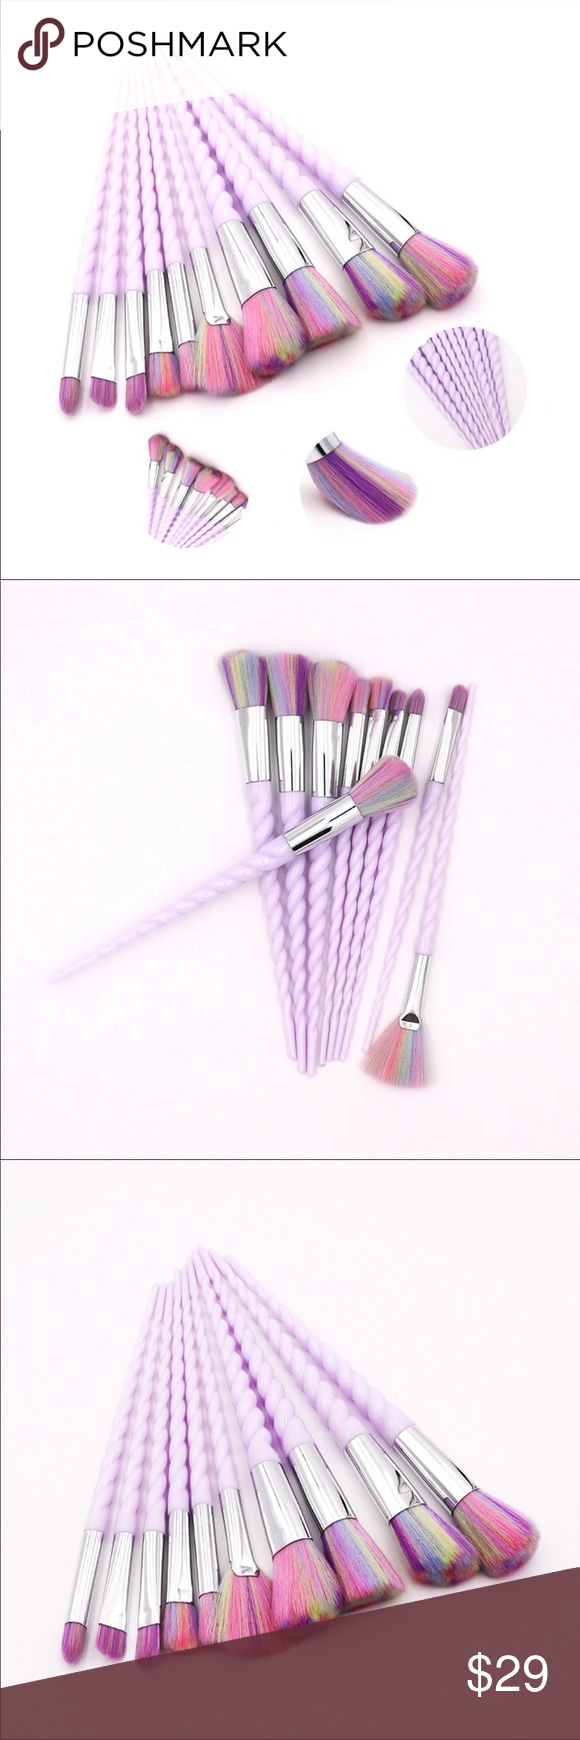 Photo of 10-tlg Make-up Pinsel Set Professionelle Make-up Pinsel Set 10-tlg Griff M … -…